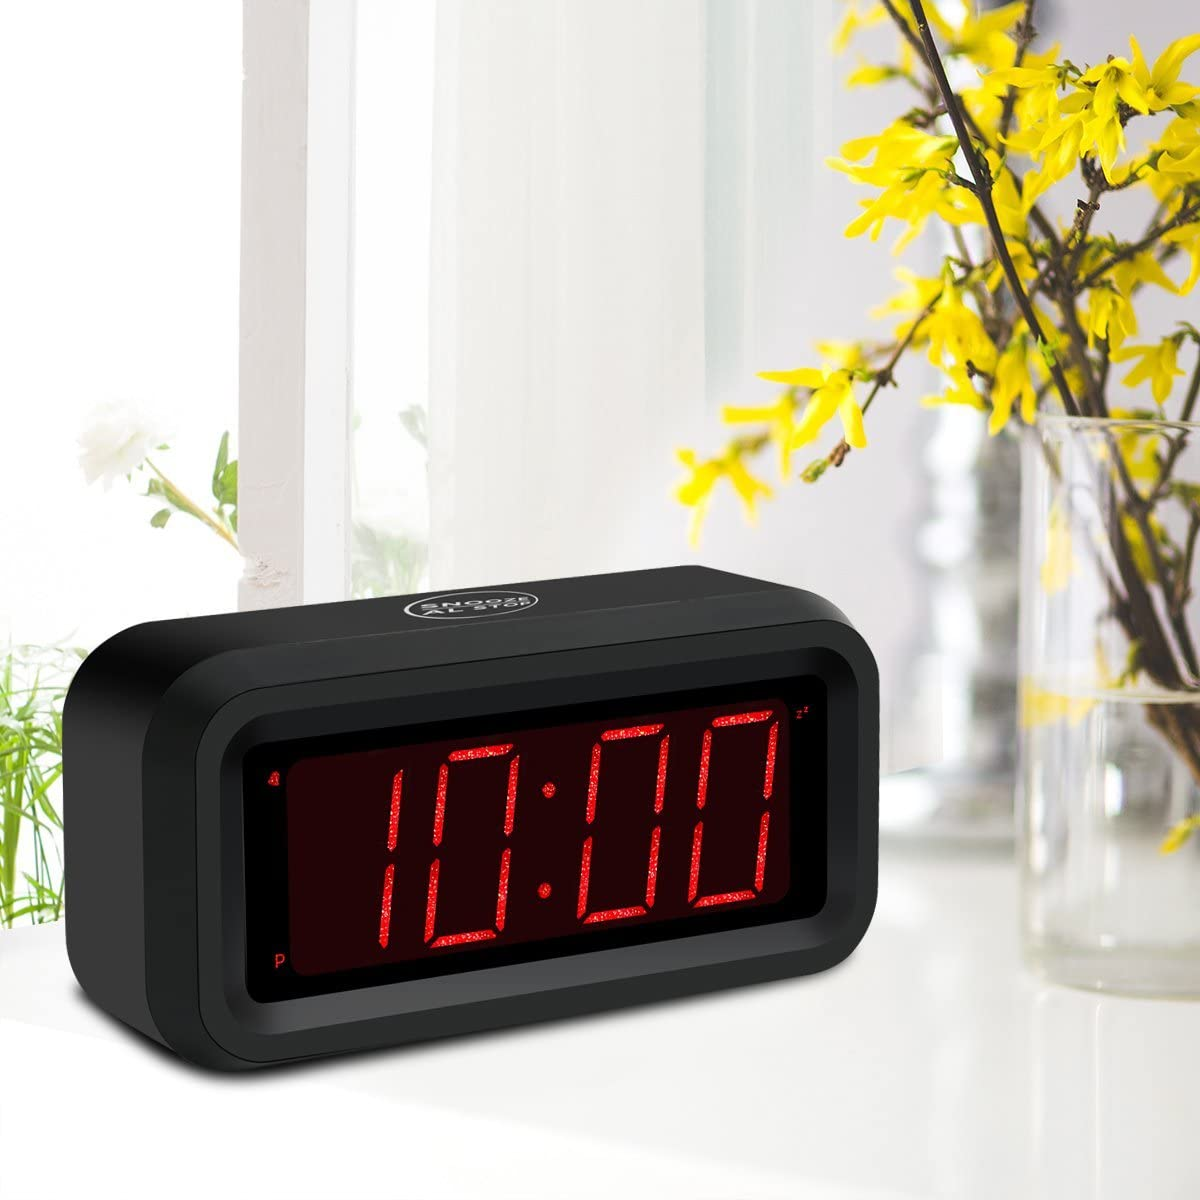 KWANWA Digital Desk Clock Small Battery Operated Clock for Media Center with 1.2 LED Number Display